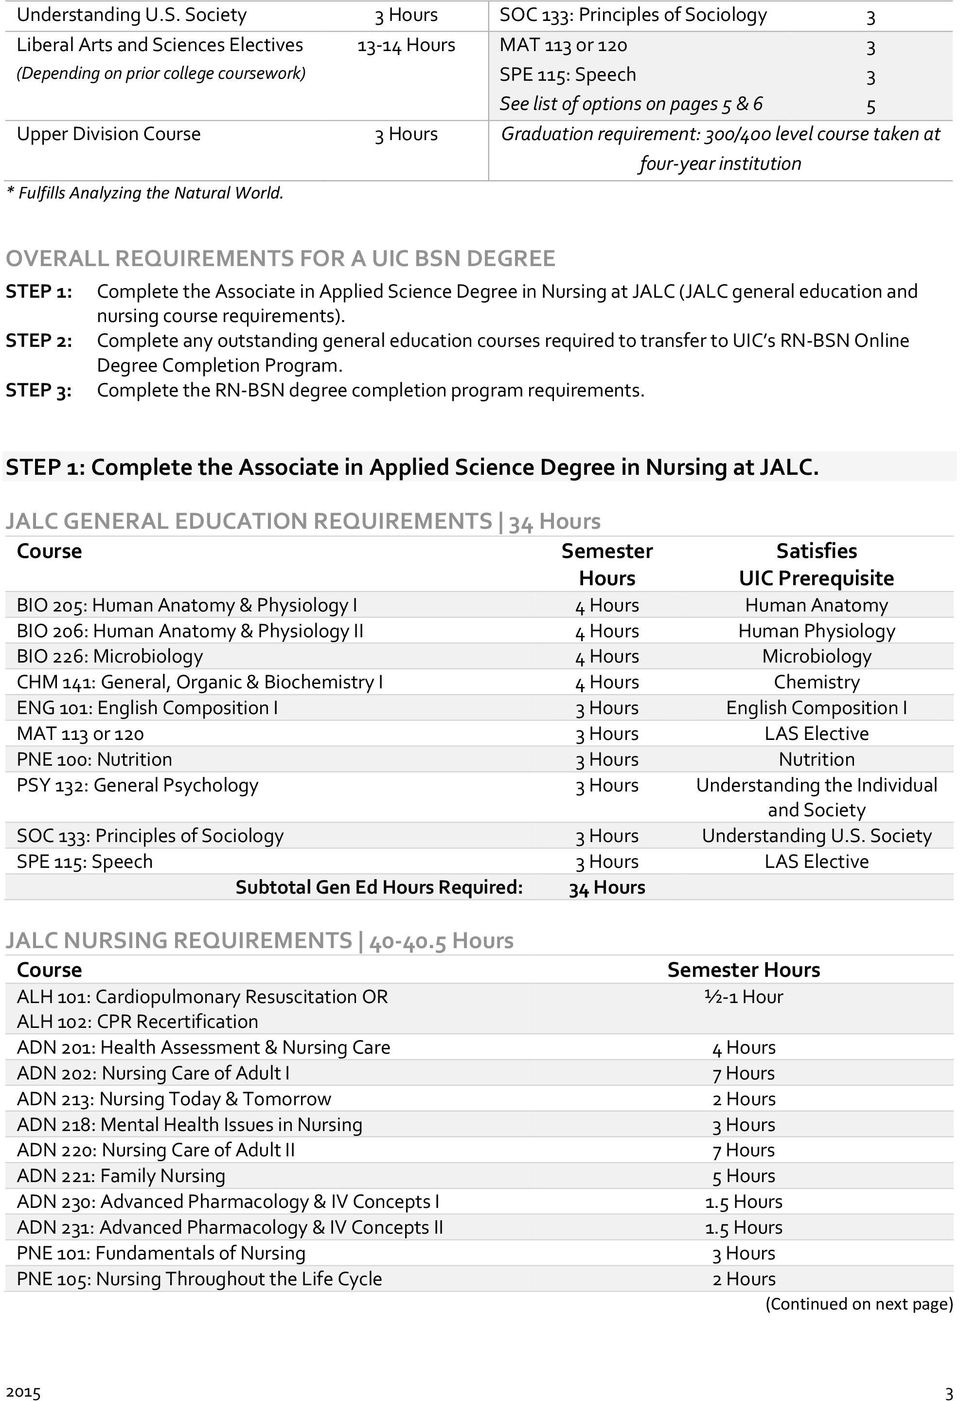 Requirements & deadlines | uic admissions.